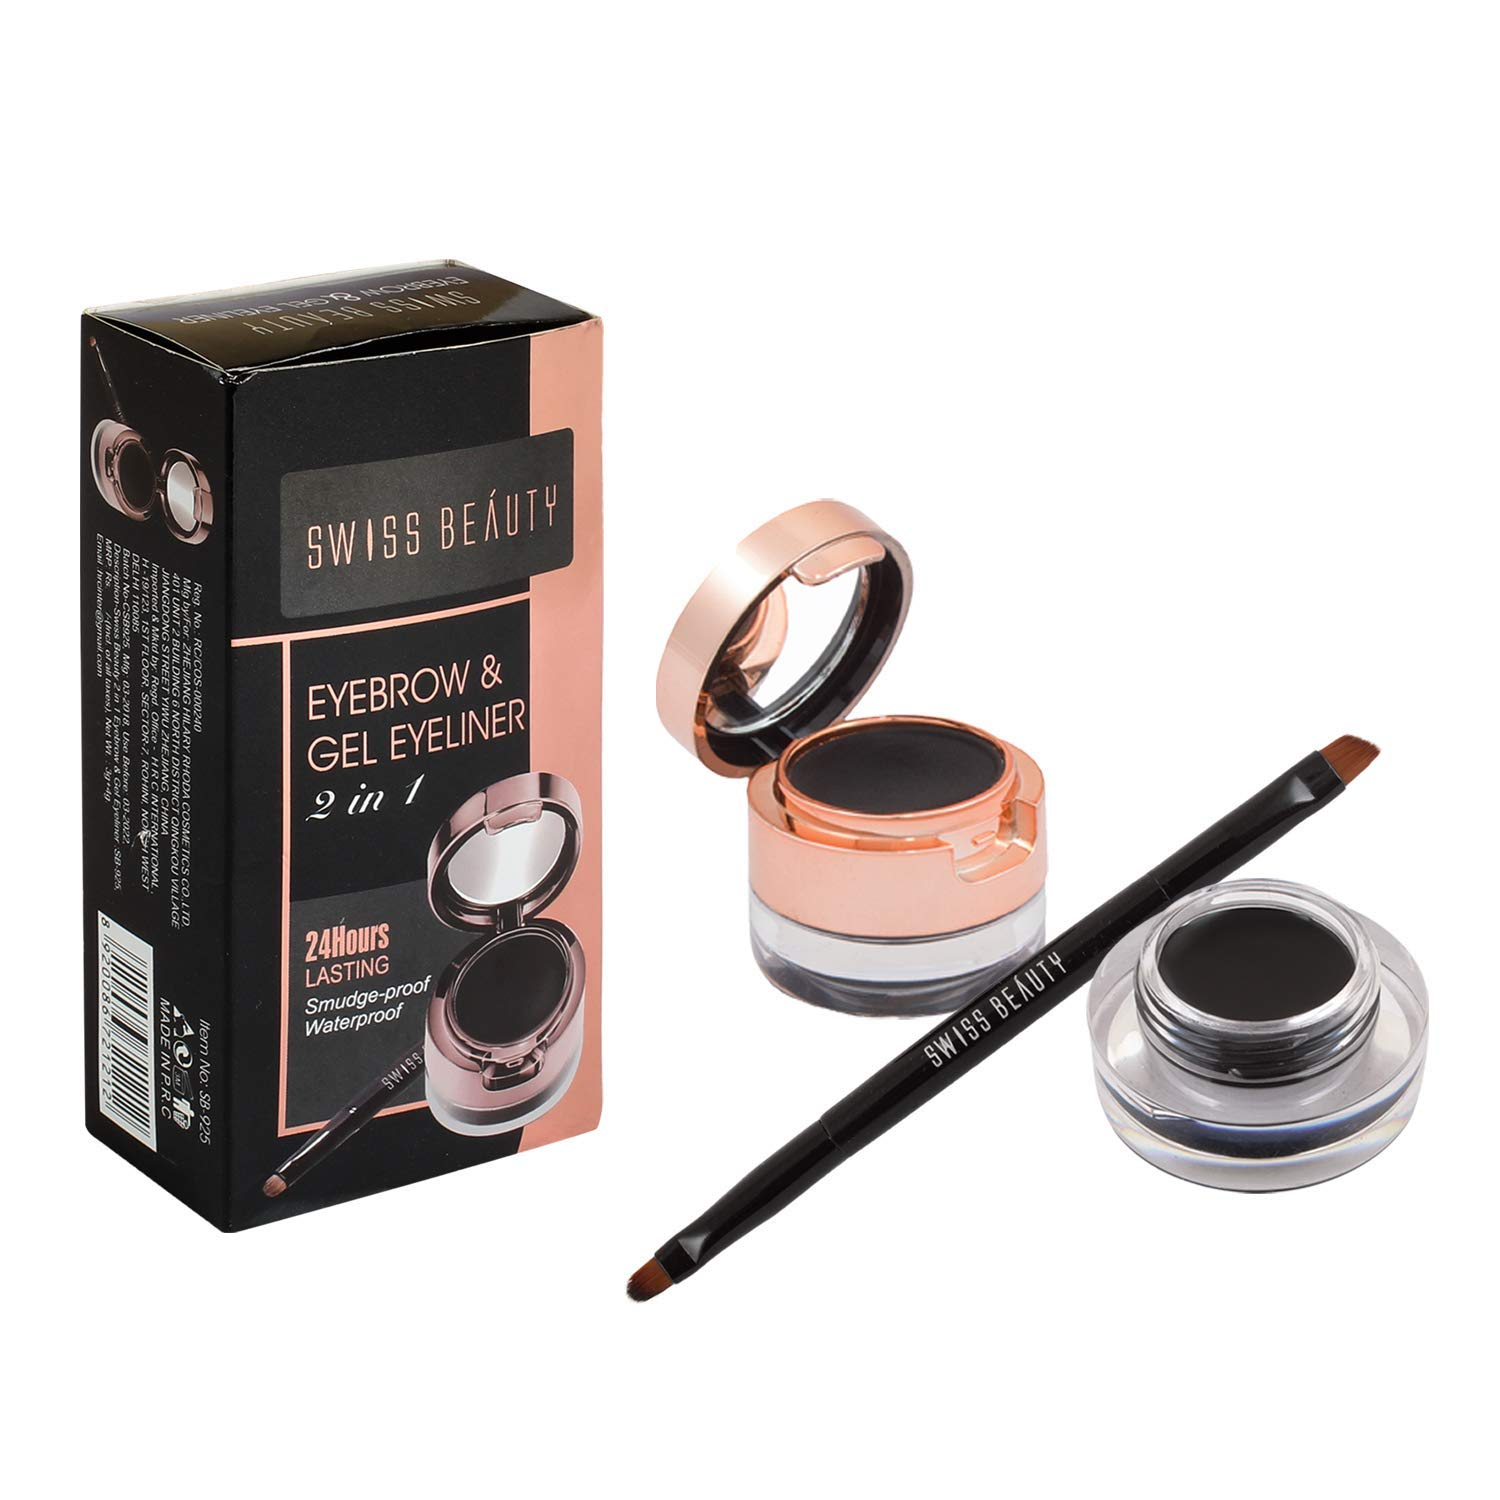 Swiss Beauty Gel Eyeliner & Eyebrow Powder 24Hrs, Black